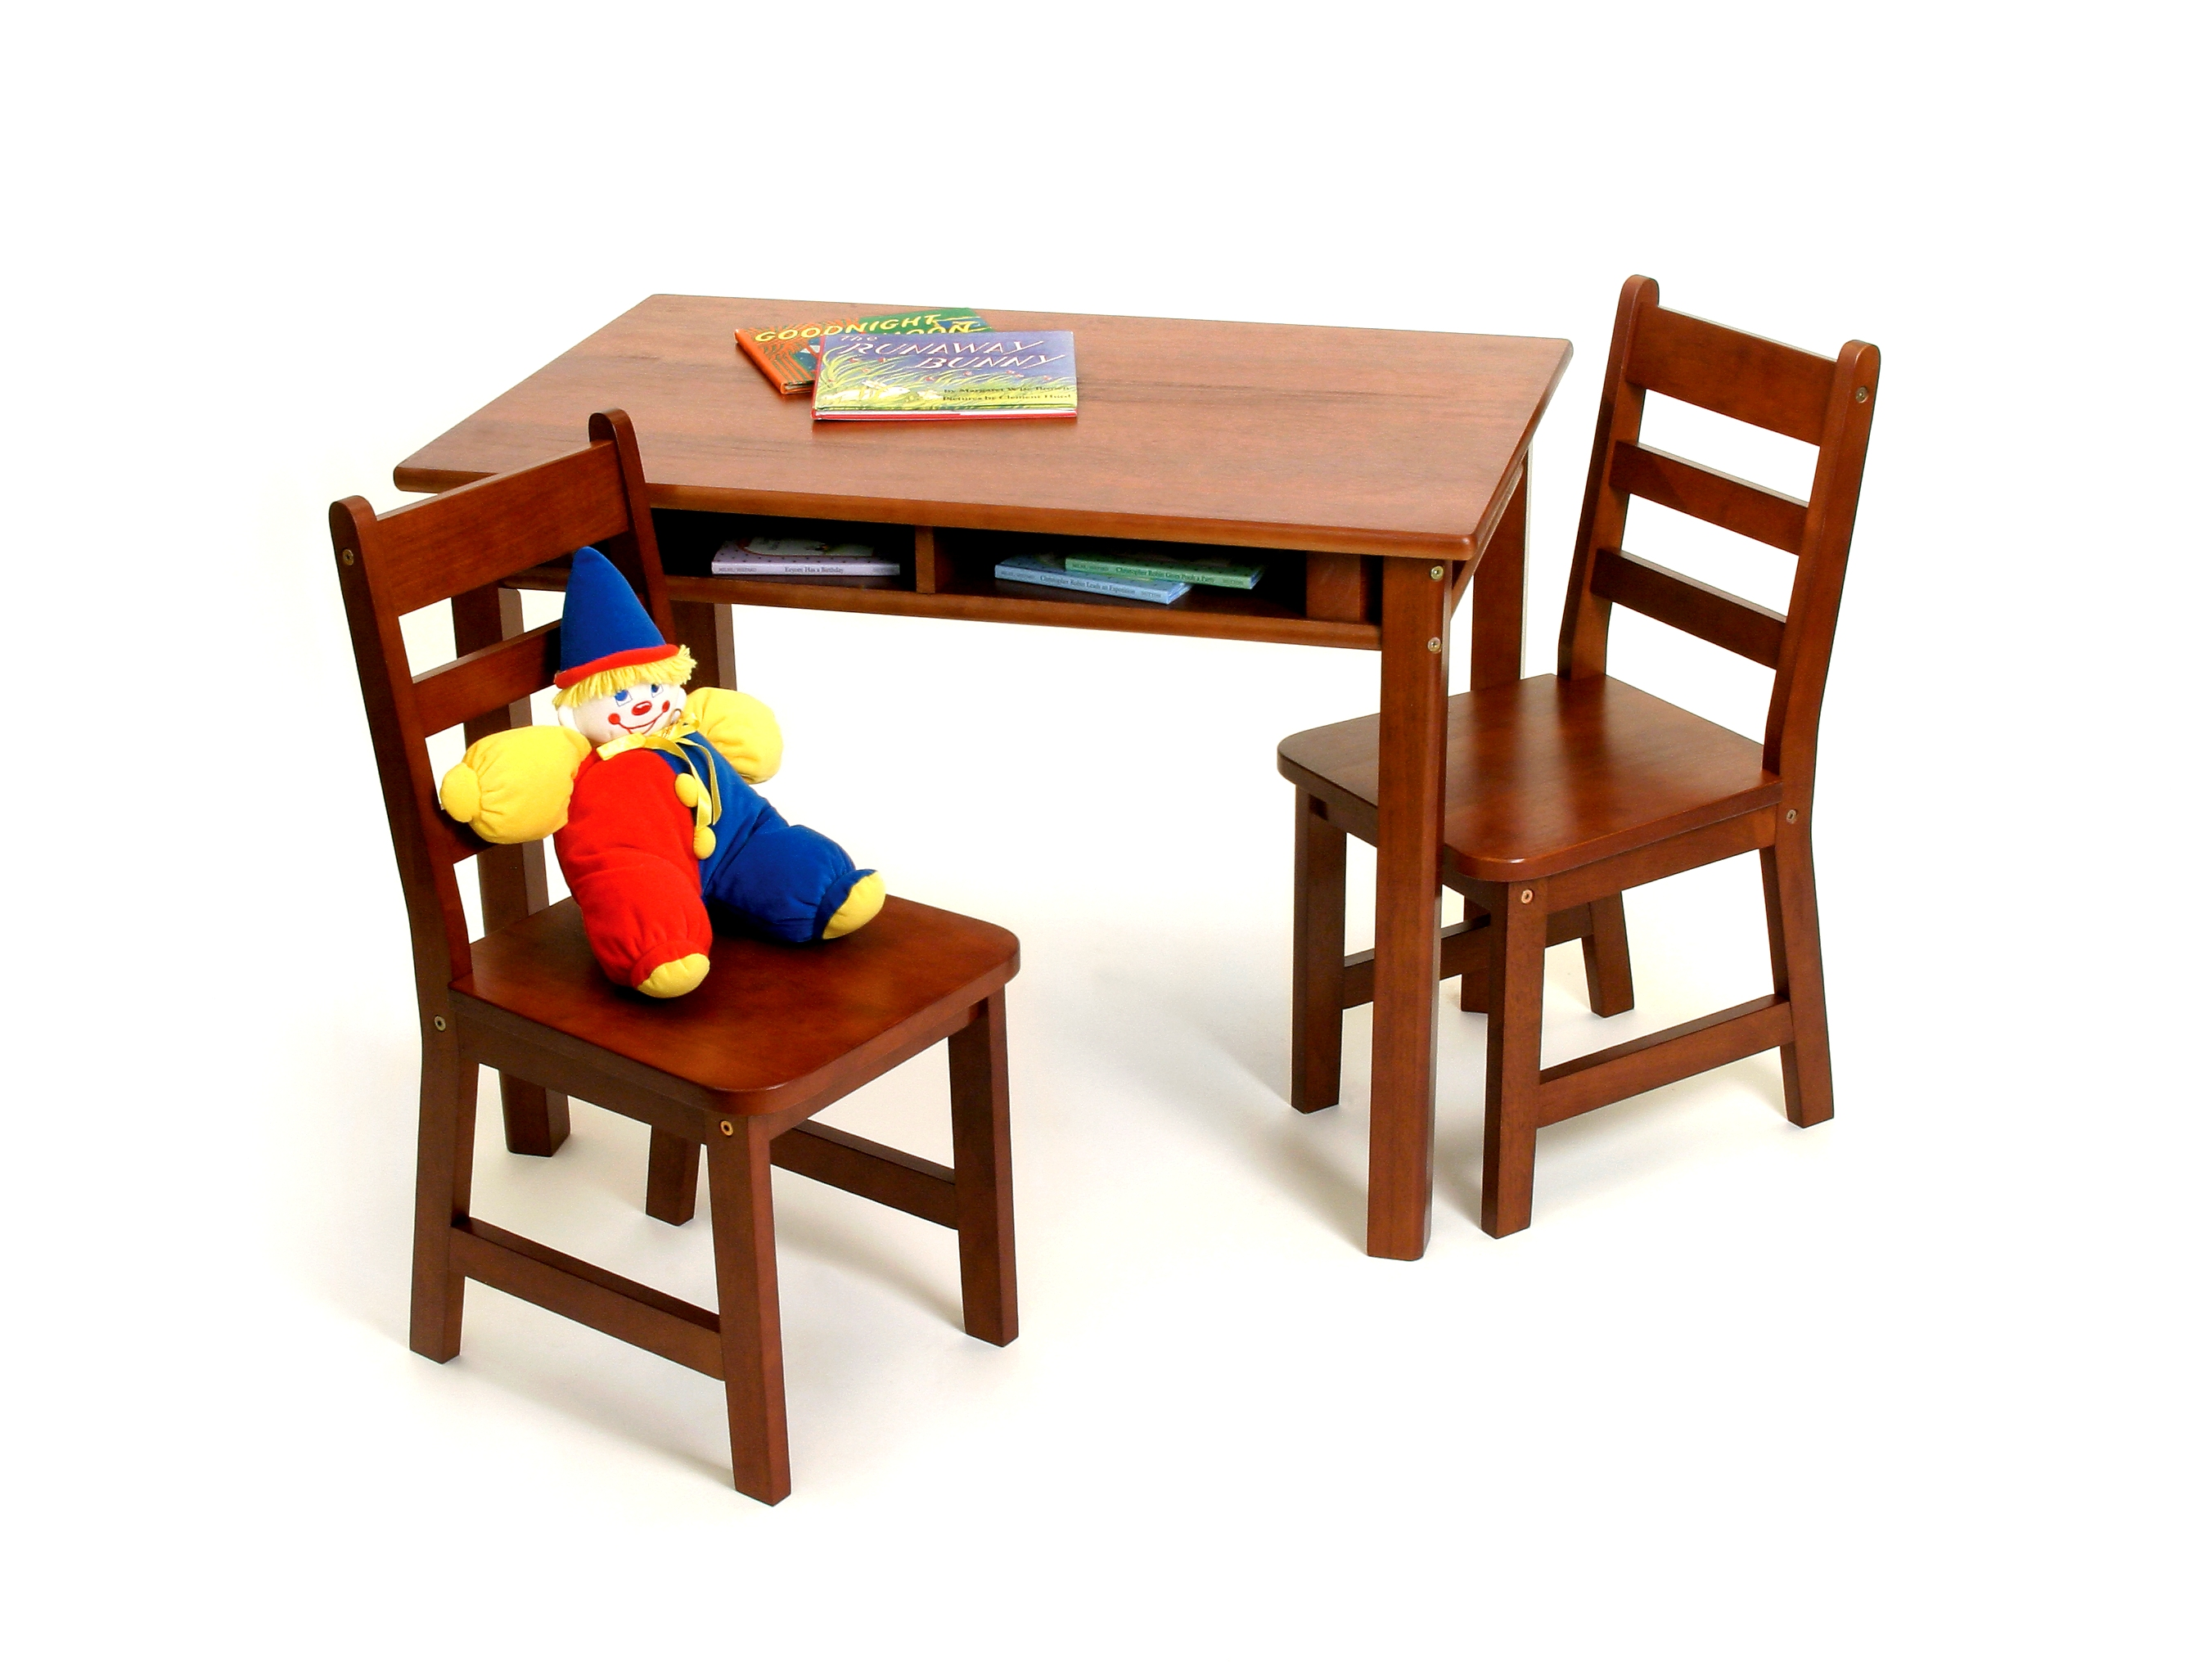 Child\'s Rectangular Table with Shelves & 2 Chairs, Cherry Finish ...